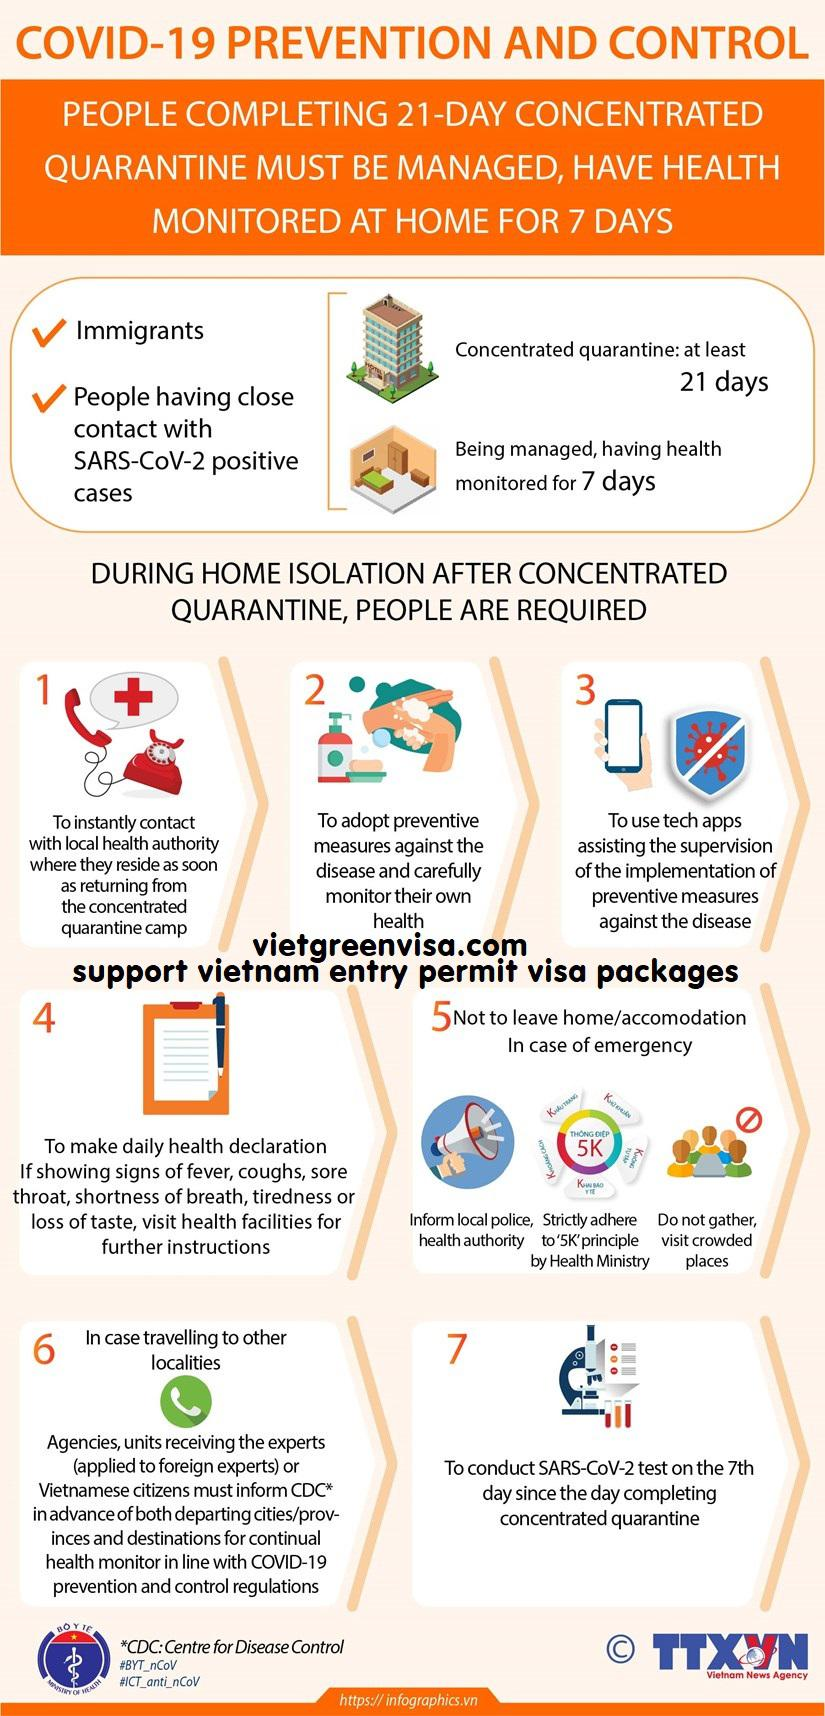 People completing concentrated quarantine must be monitored for 7 days